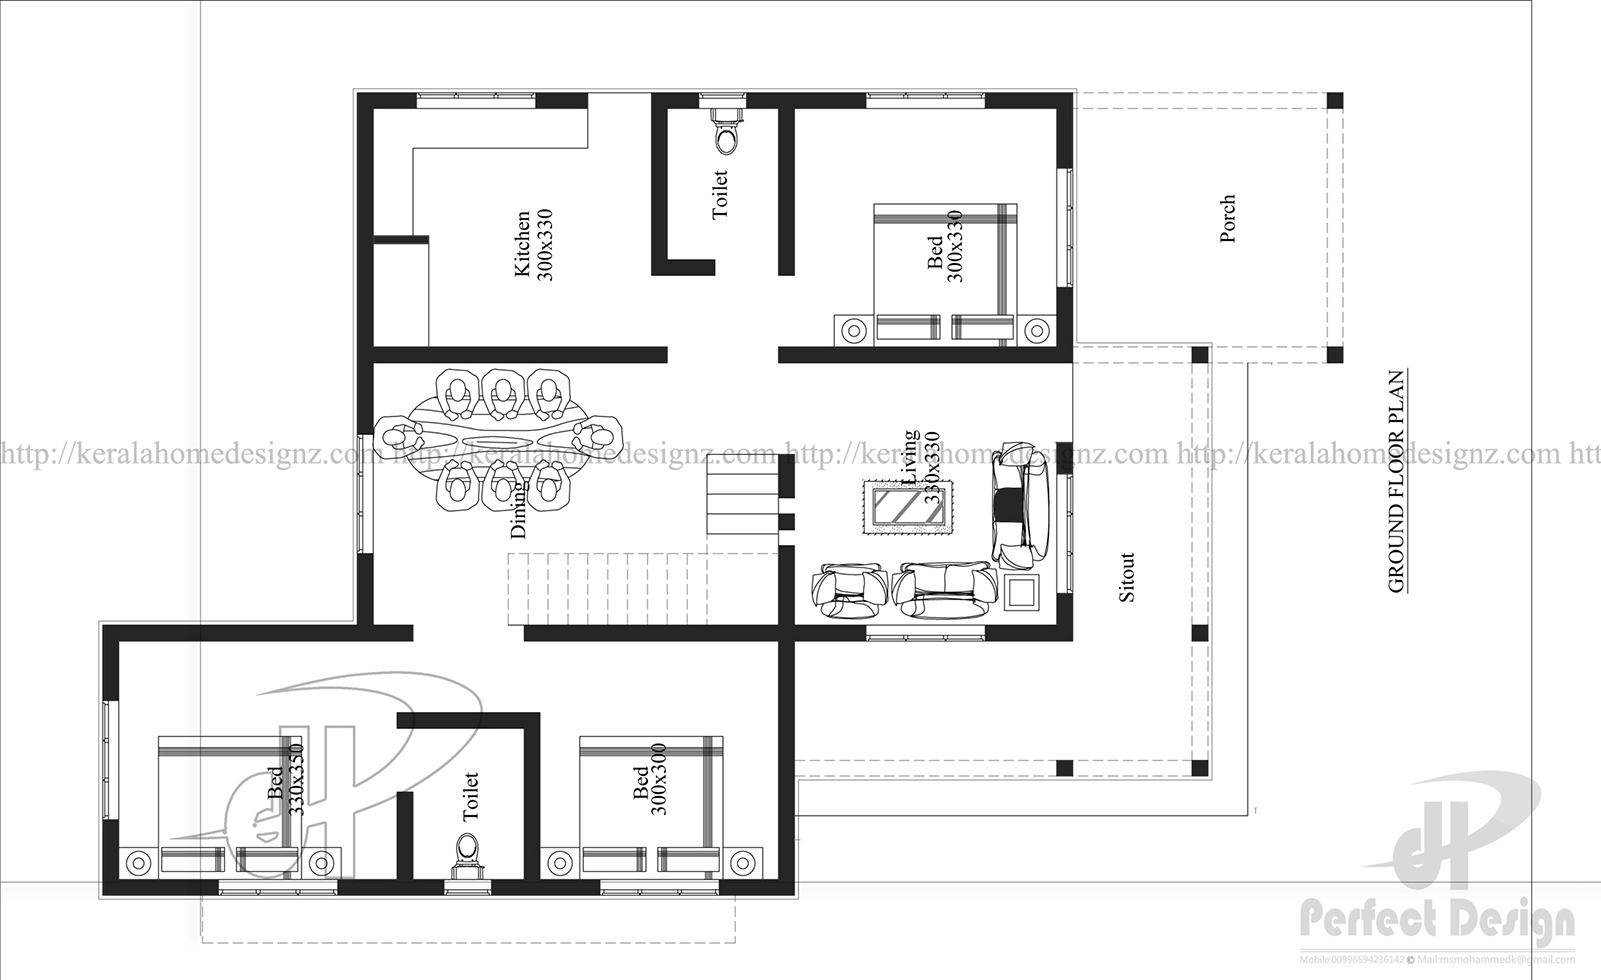 3 bedroom modern flat roof house layout kerala home design for Three bedroom flat plan